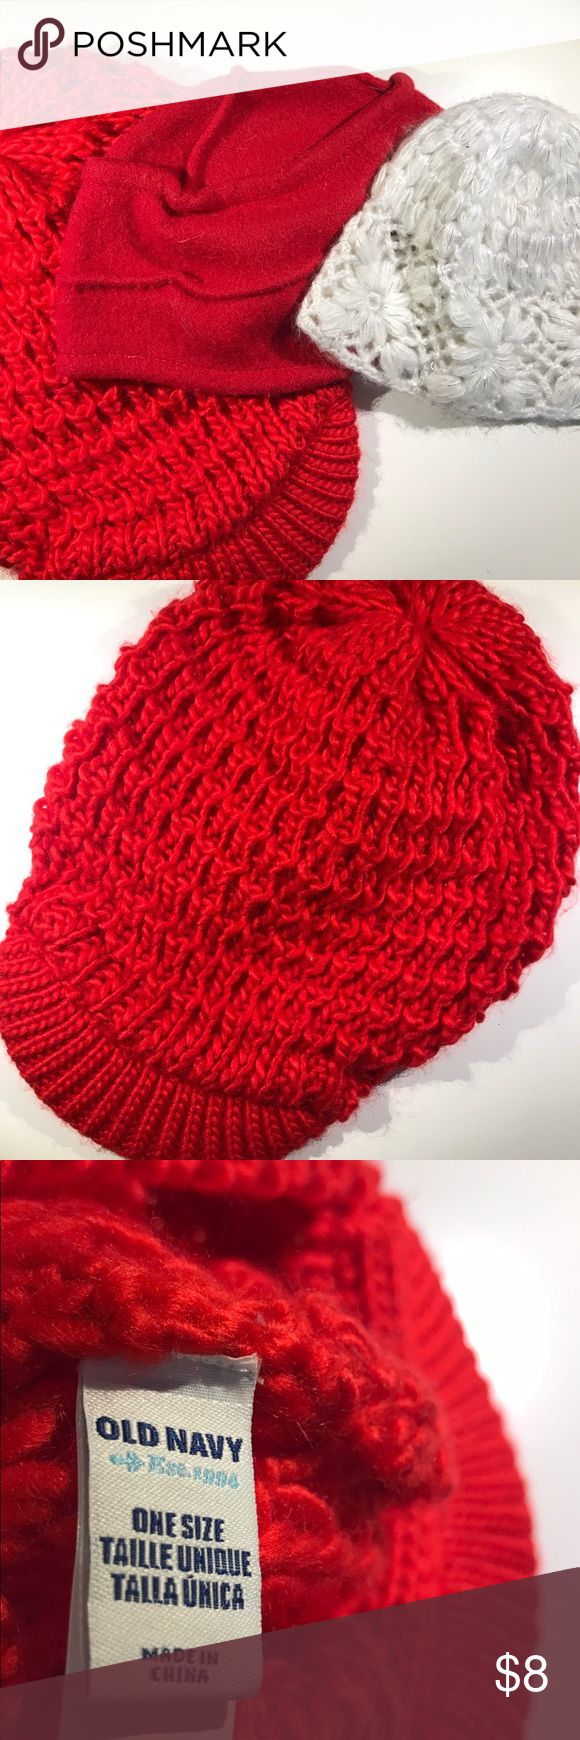 BRAND NEW pack of 3 Red and White Beanies/Hats! BRAND NEW NEVER WORN 3 Pack! First is a vibrant red beanie hat with a visor- perfect for a super cool woman! Next is a super cute red bowl hat- contains hair nicely! Last is a white intricate beanie with glitter detailing- a beautiful accessory! :) Accessories Hats